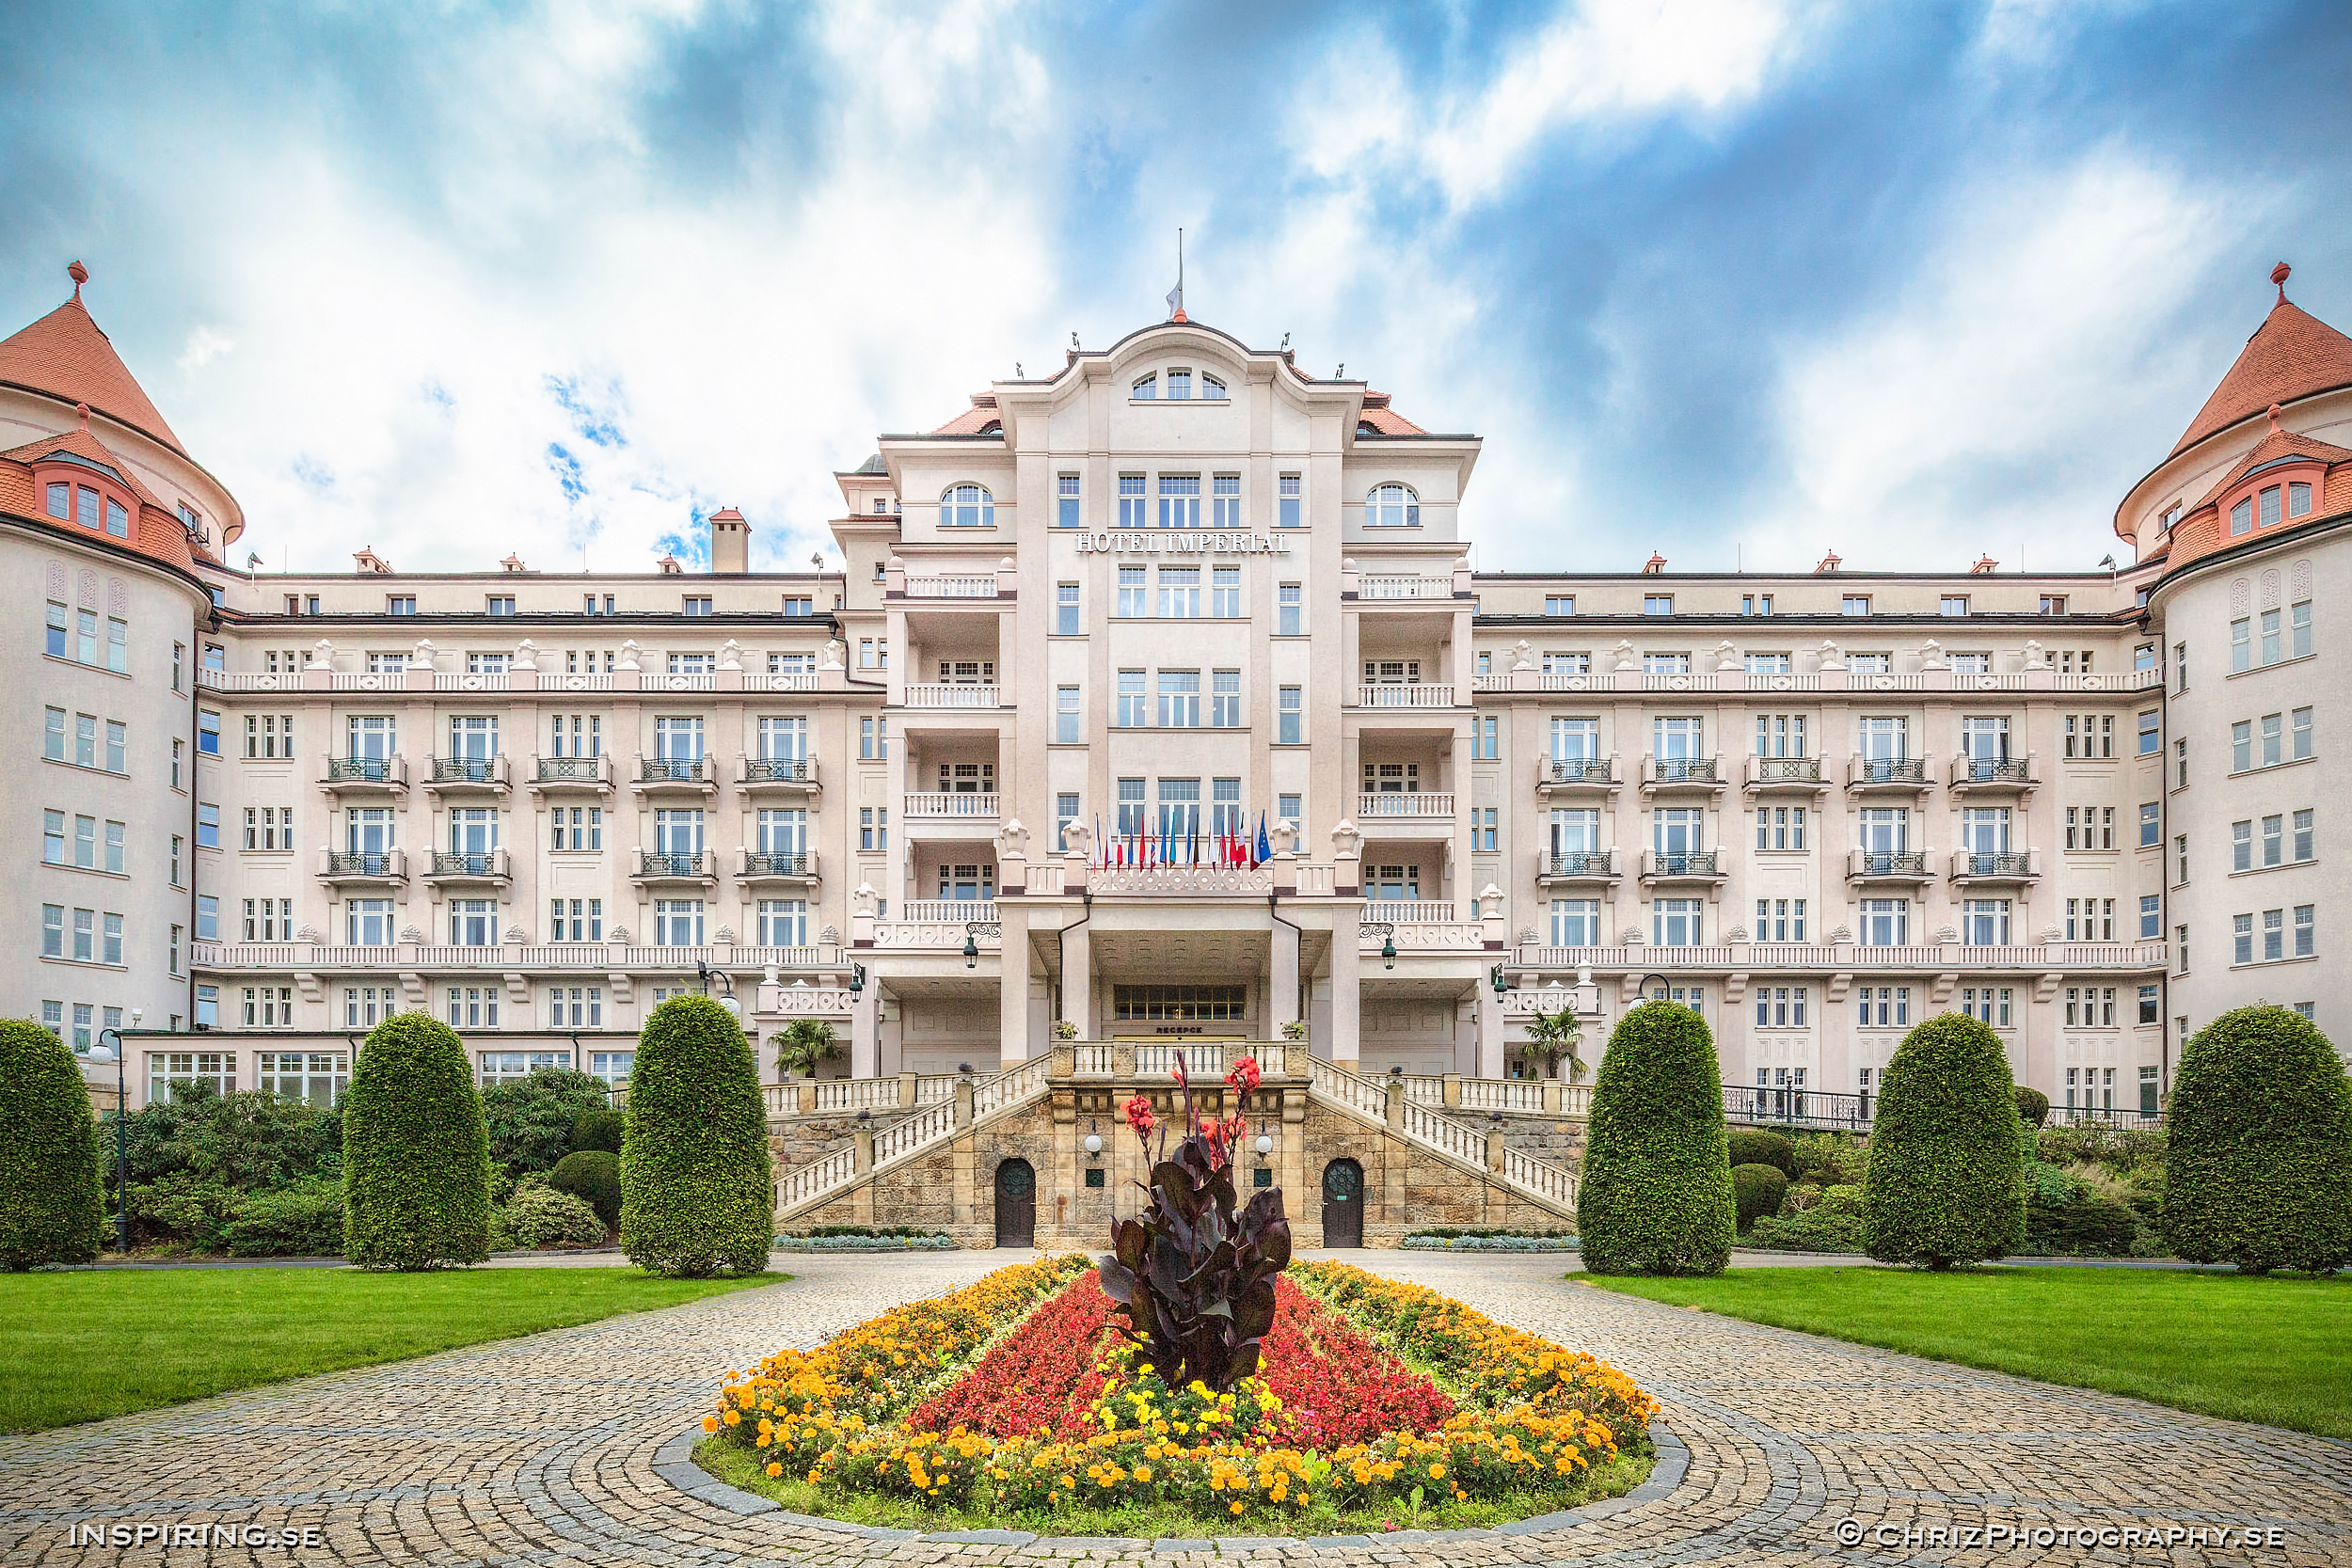 Hotel_Imperial_Inspiring.se_copyright_ChrizPhotography.se_2.jpg